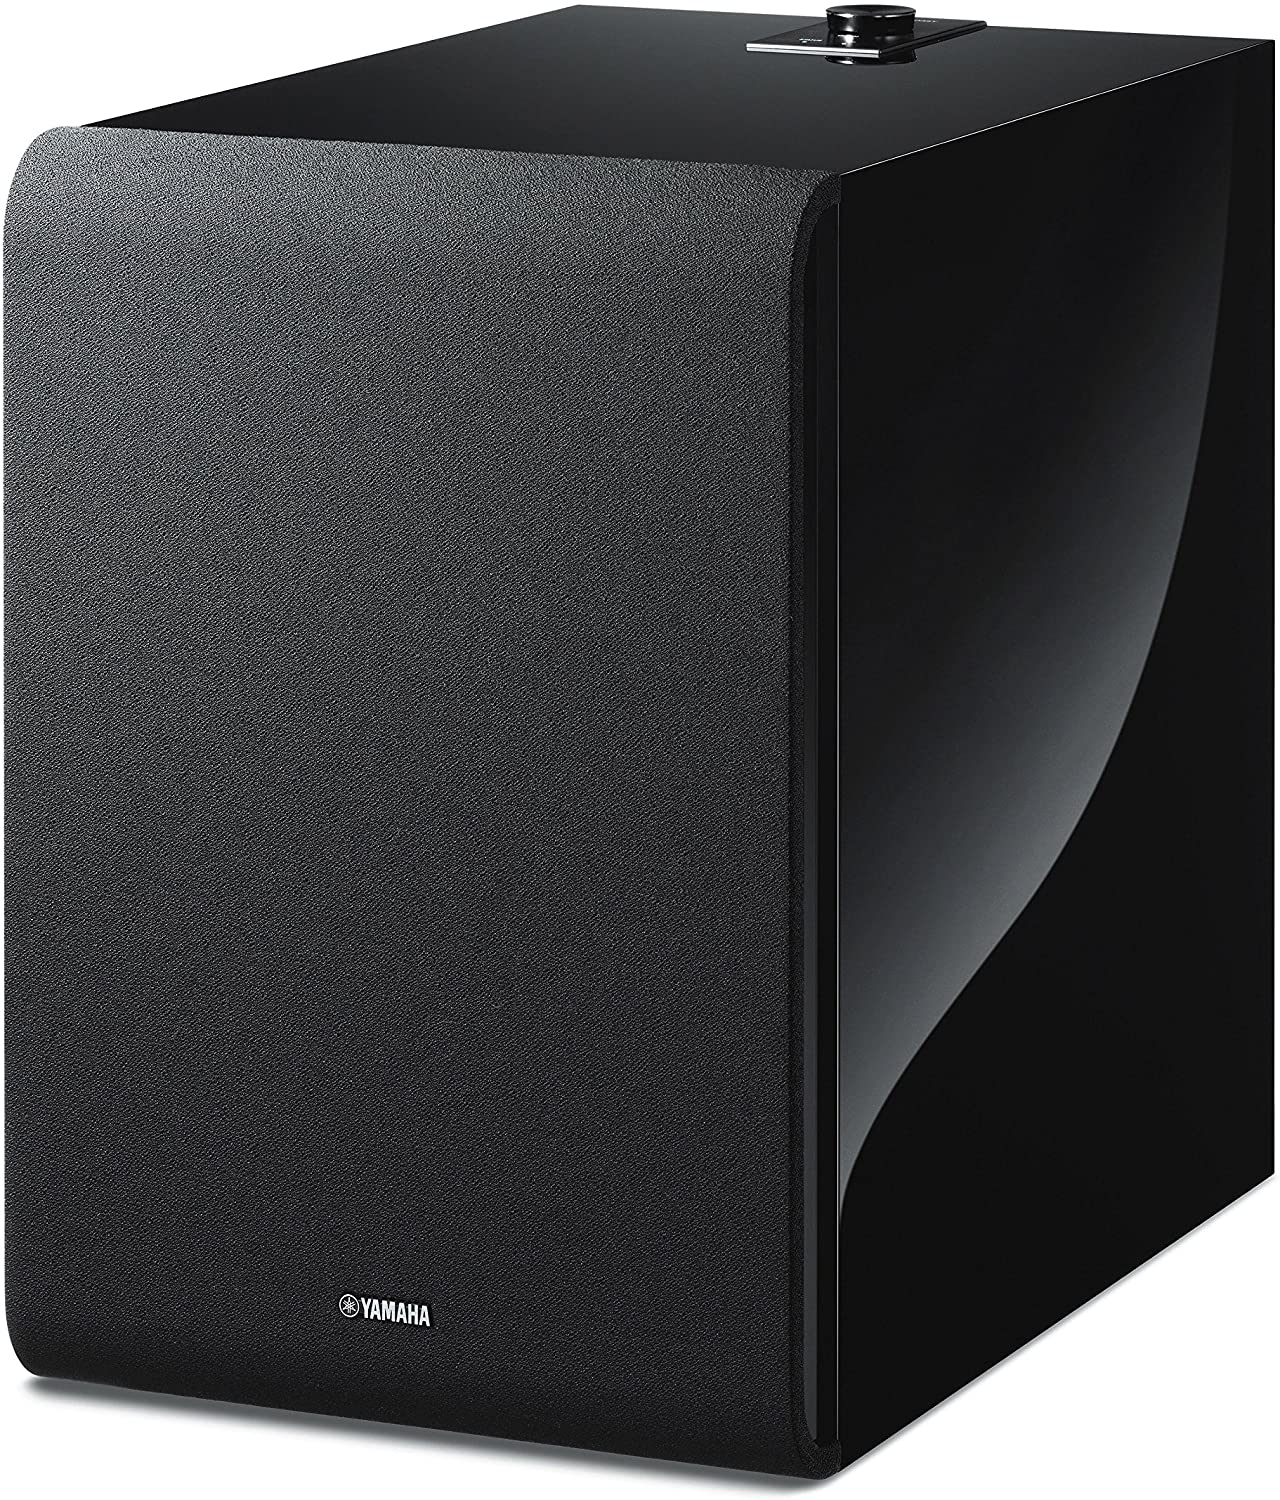 Cheap mail order sales Yamaha MusicCast Max 52% OFF SUB 100 Wireless Ale with Compatible Subwoofer